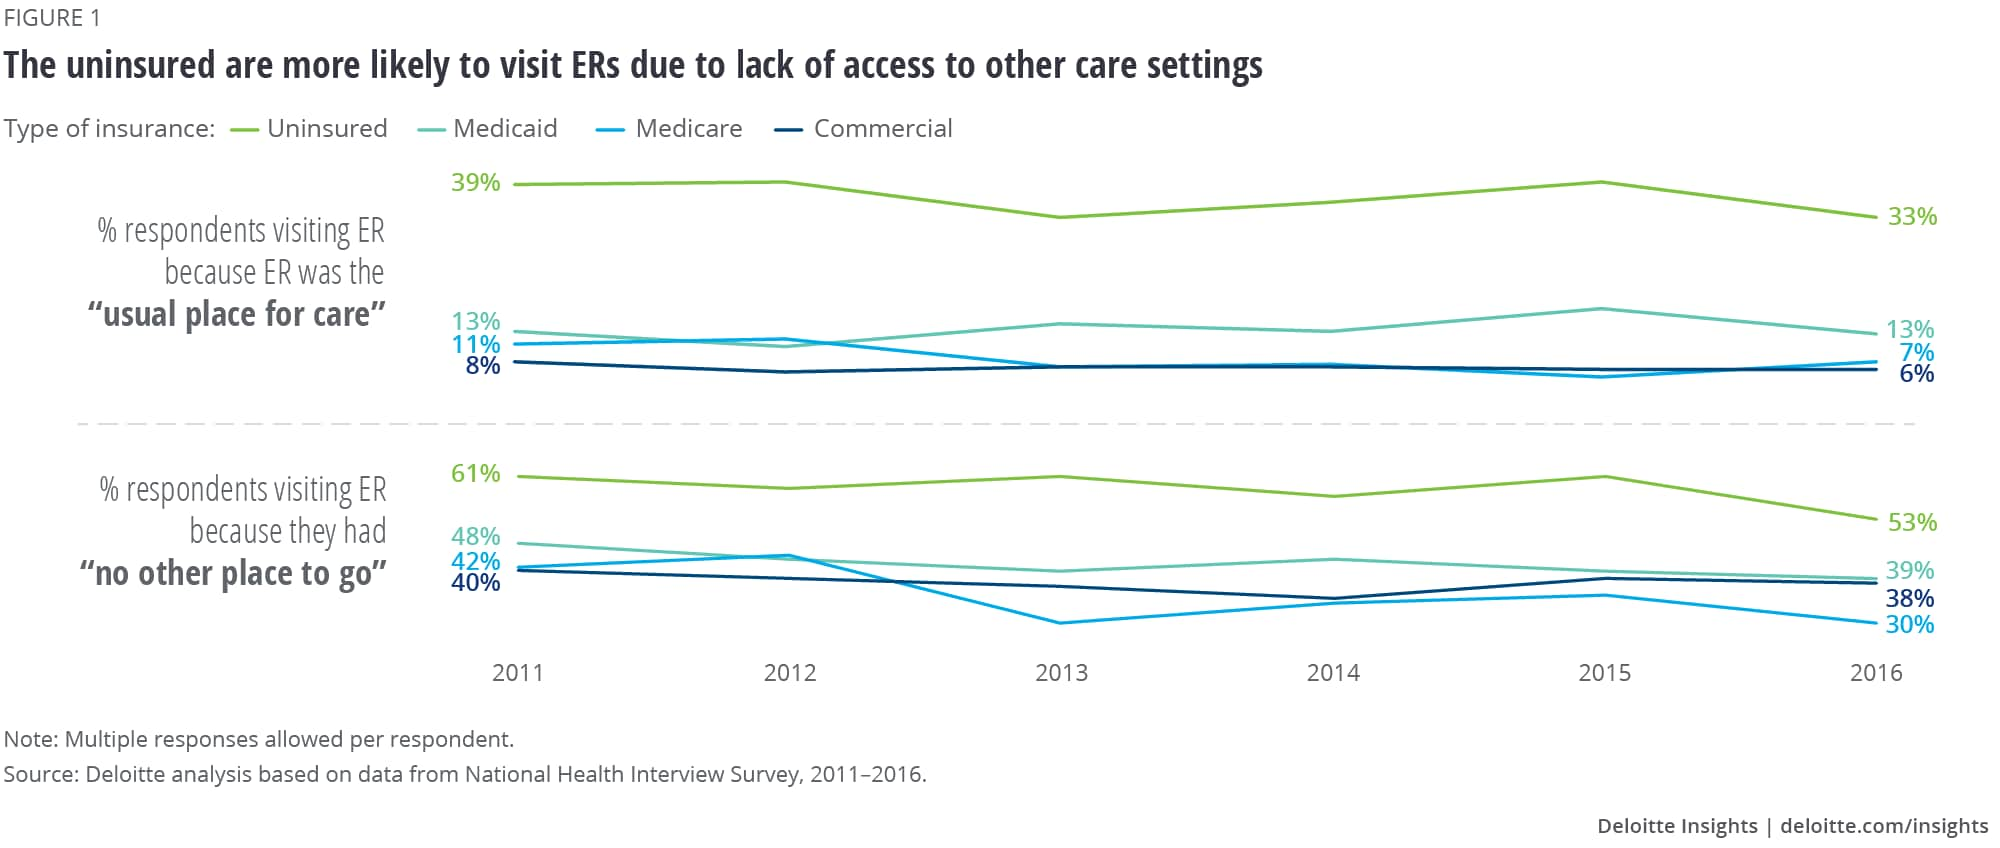 The uninsured are more likely to visit ERs due to lack of access to other care settings